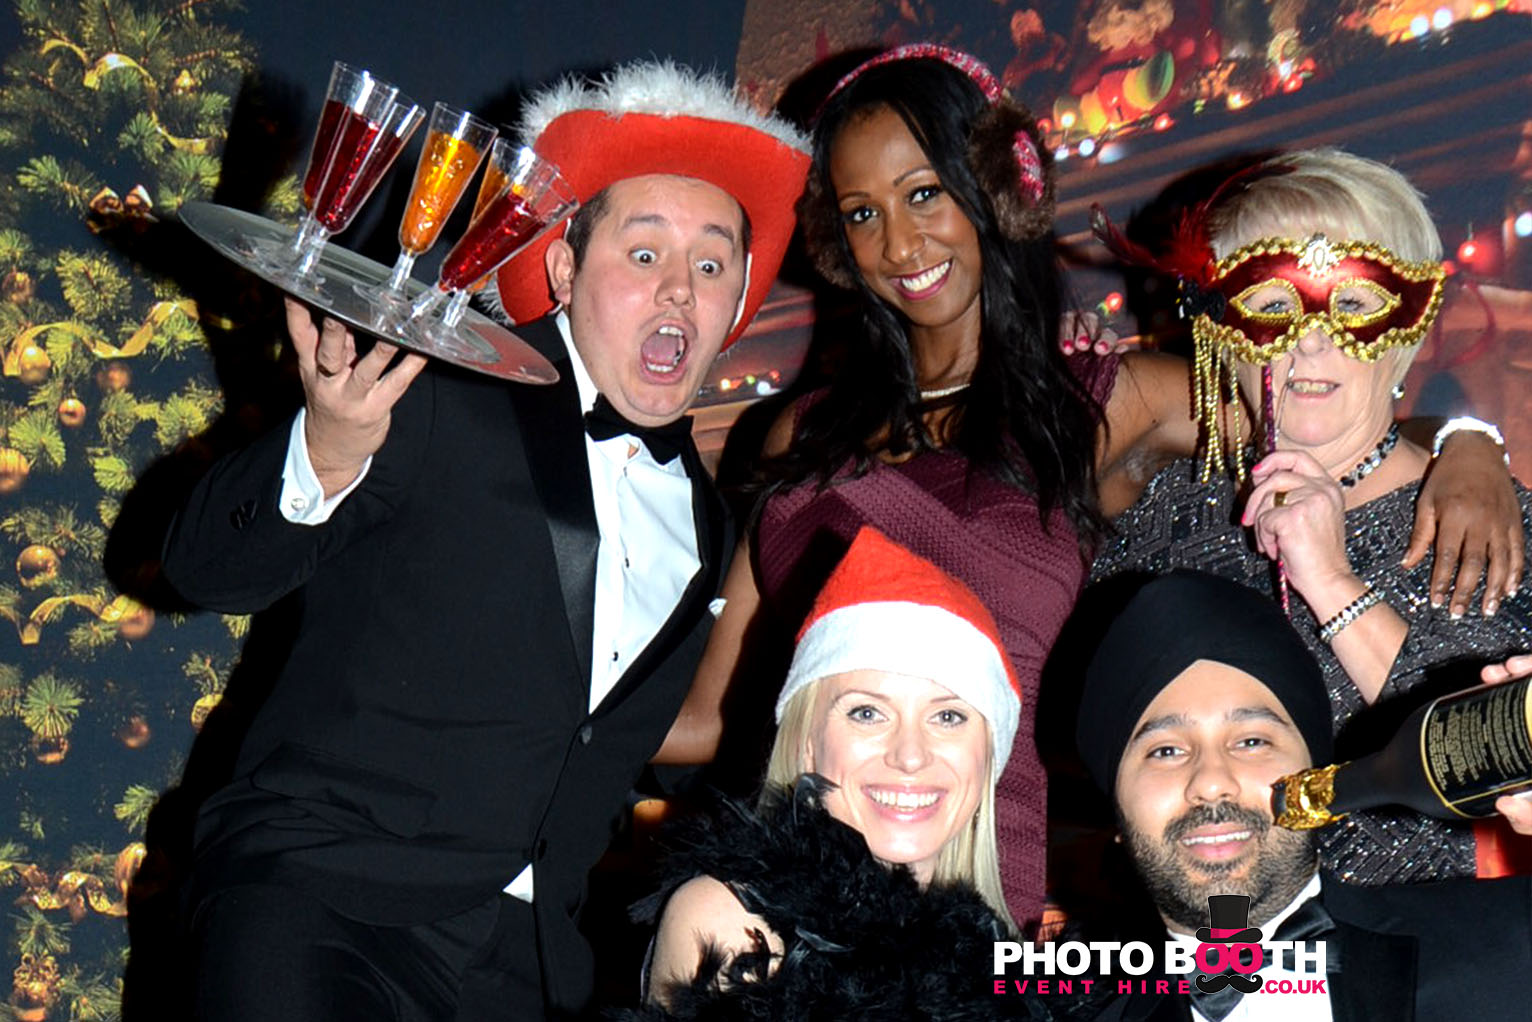 Photo Booth Event Hire.co.uk